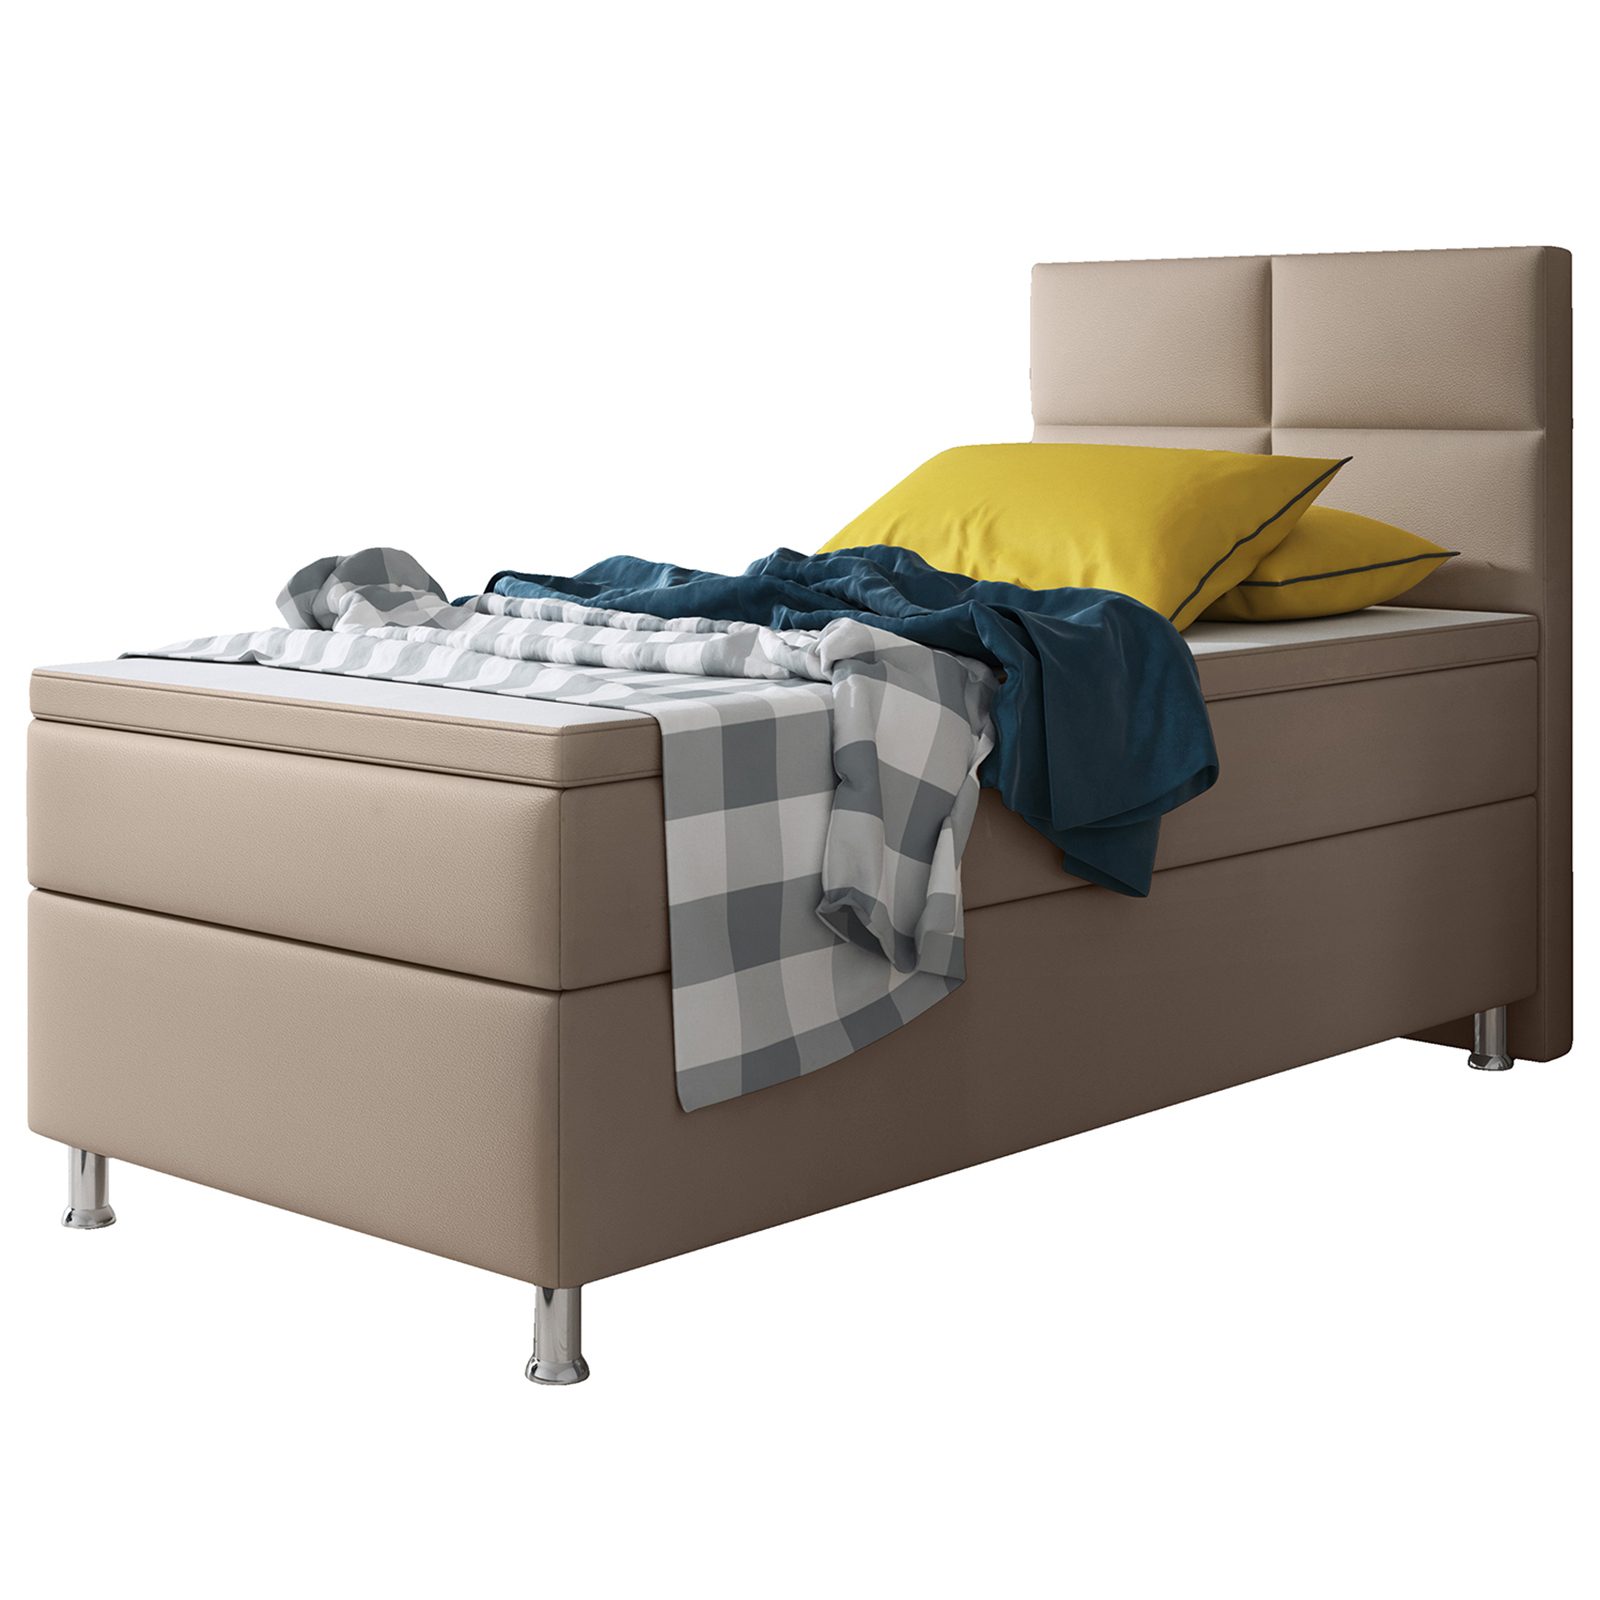 Boxspringbett Design Miami Muddy Mit Bettkasten H3 90x200 Cm